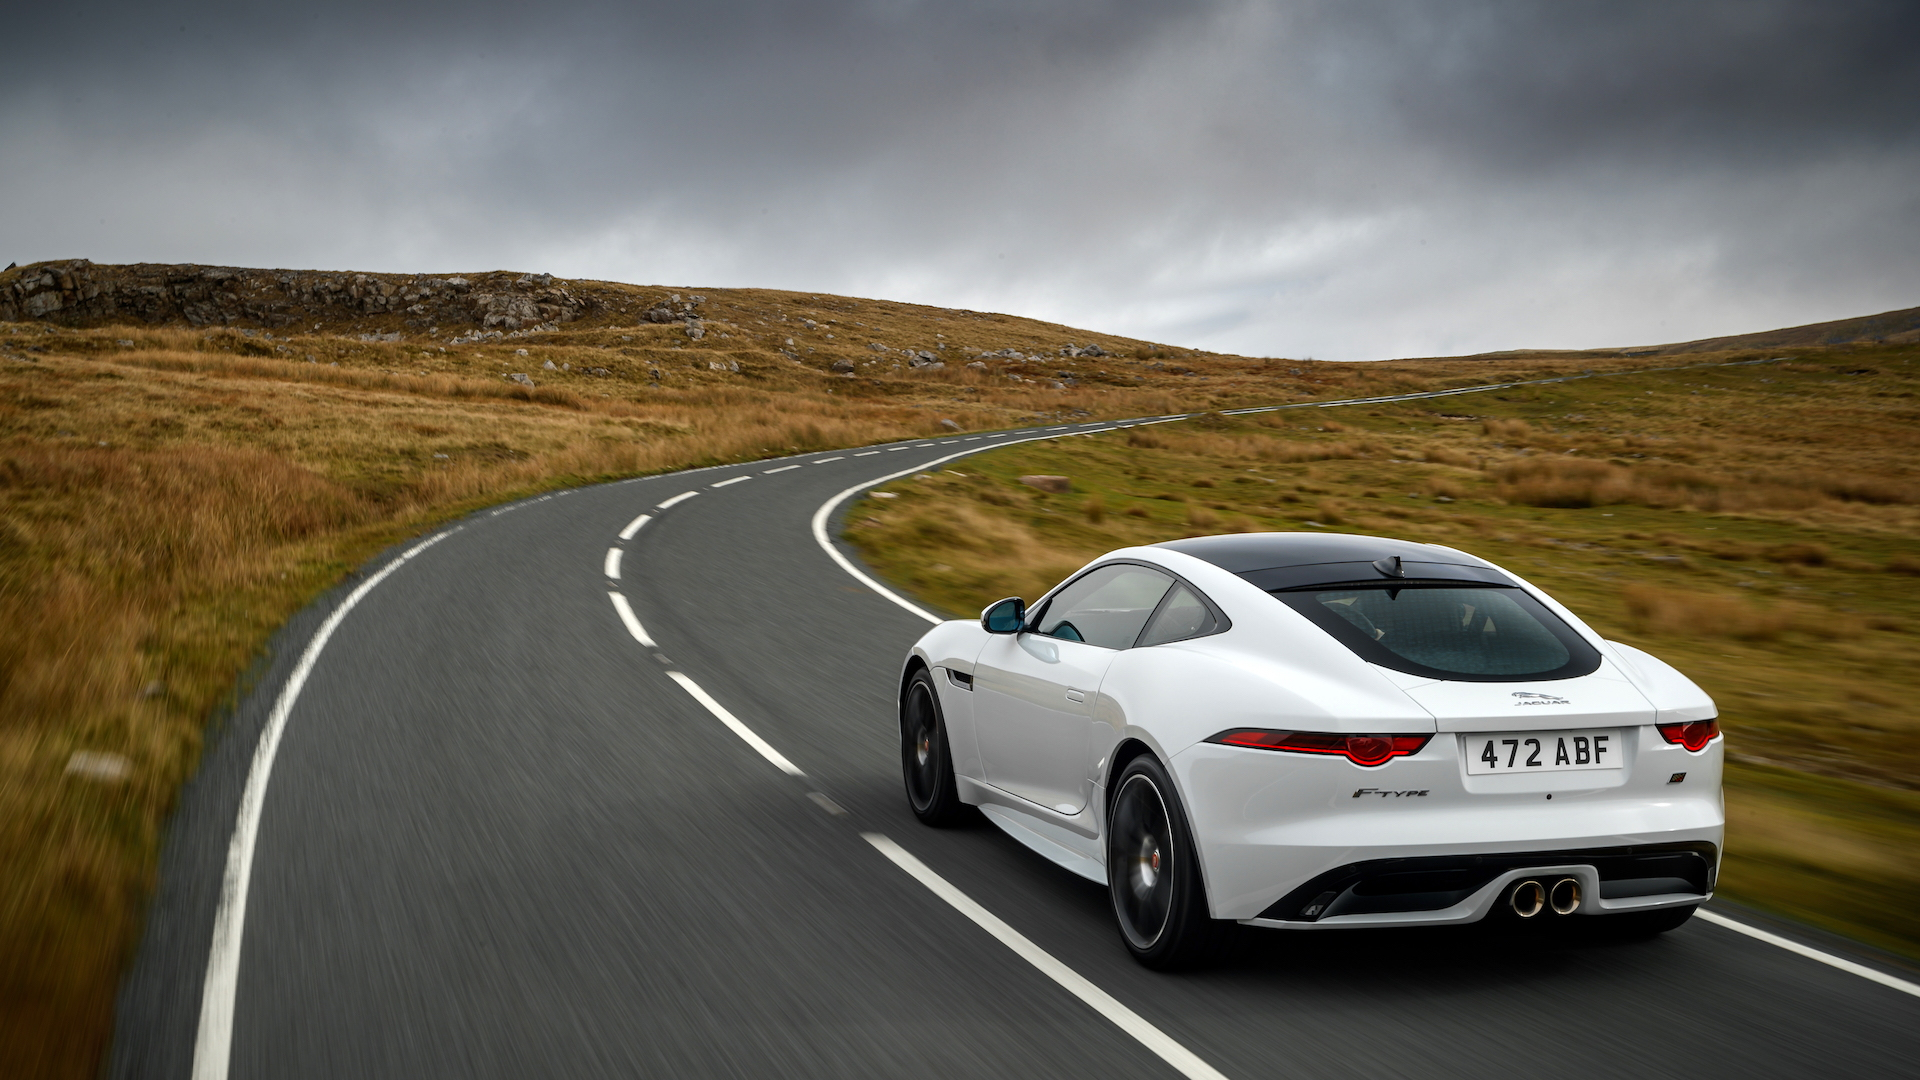 2020 Jaguar F-Type Checkered Flag Edition